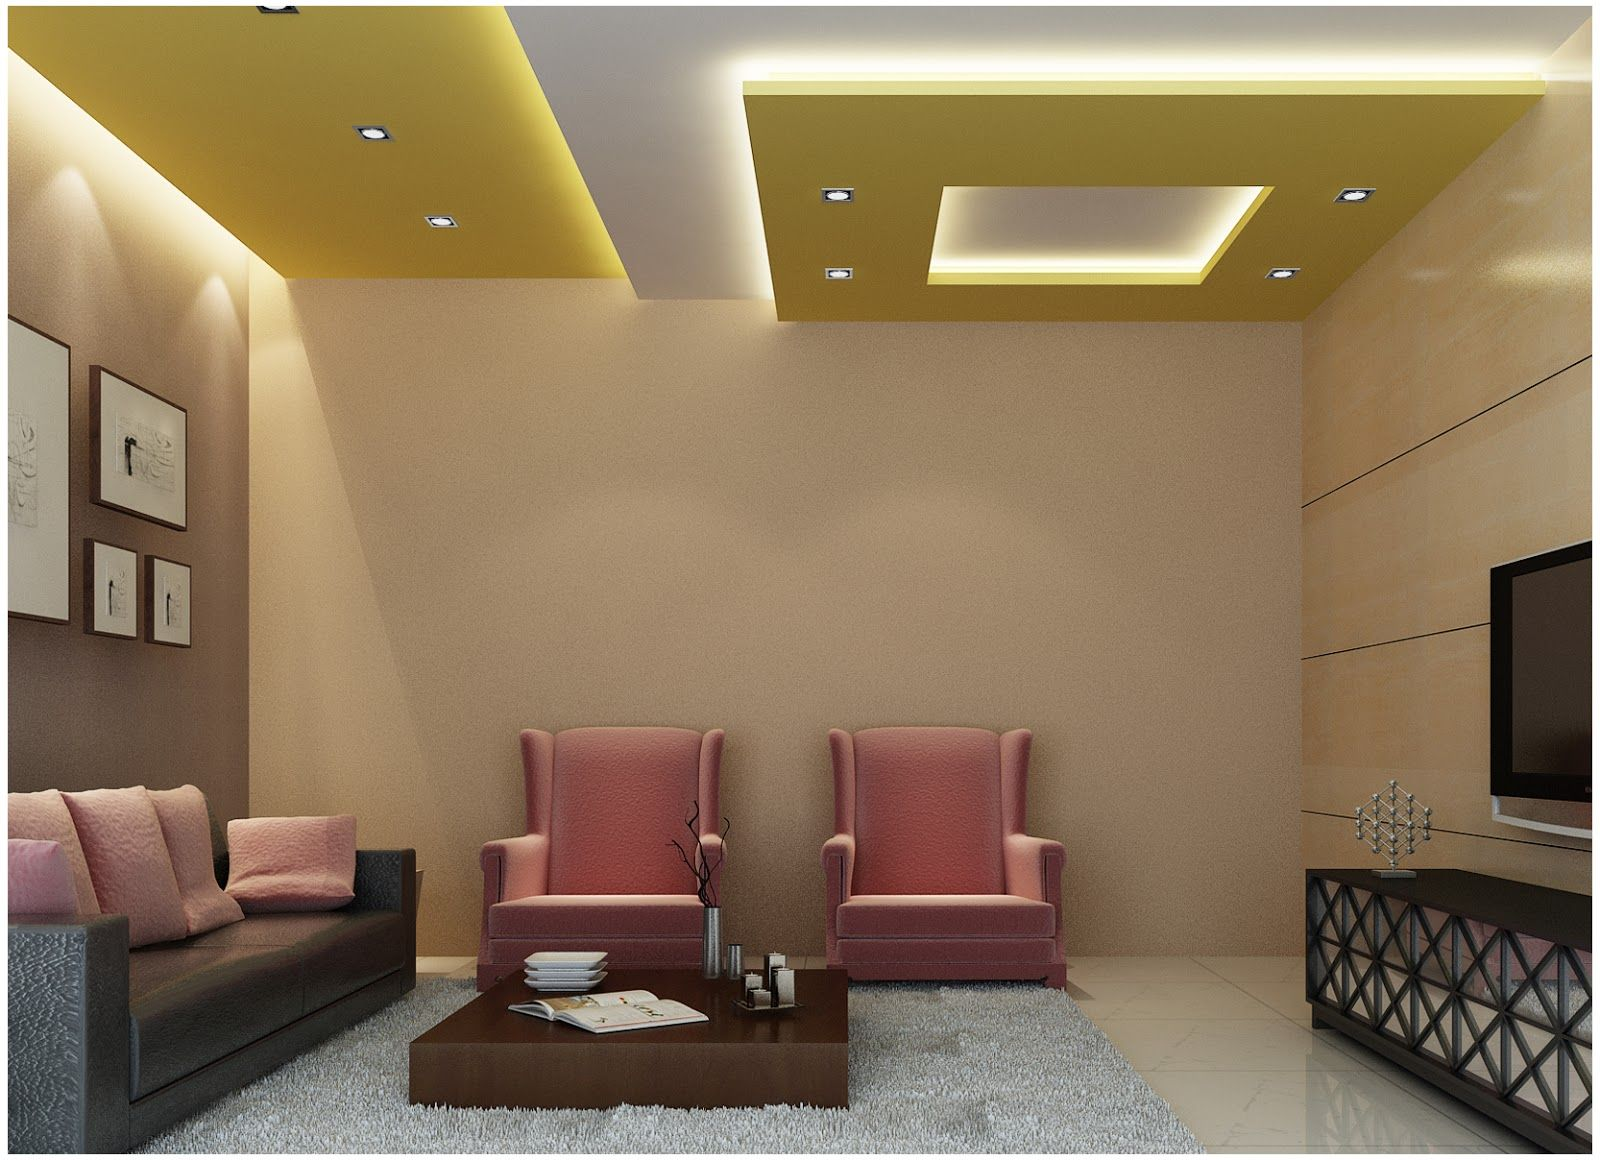 Large catalog for plaster designs for false ceilings for all rooms in modern  style 25 modern plaster ceiling designs with integrated LED ceiling  lighting ...